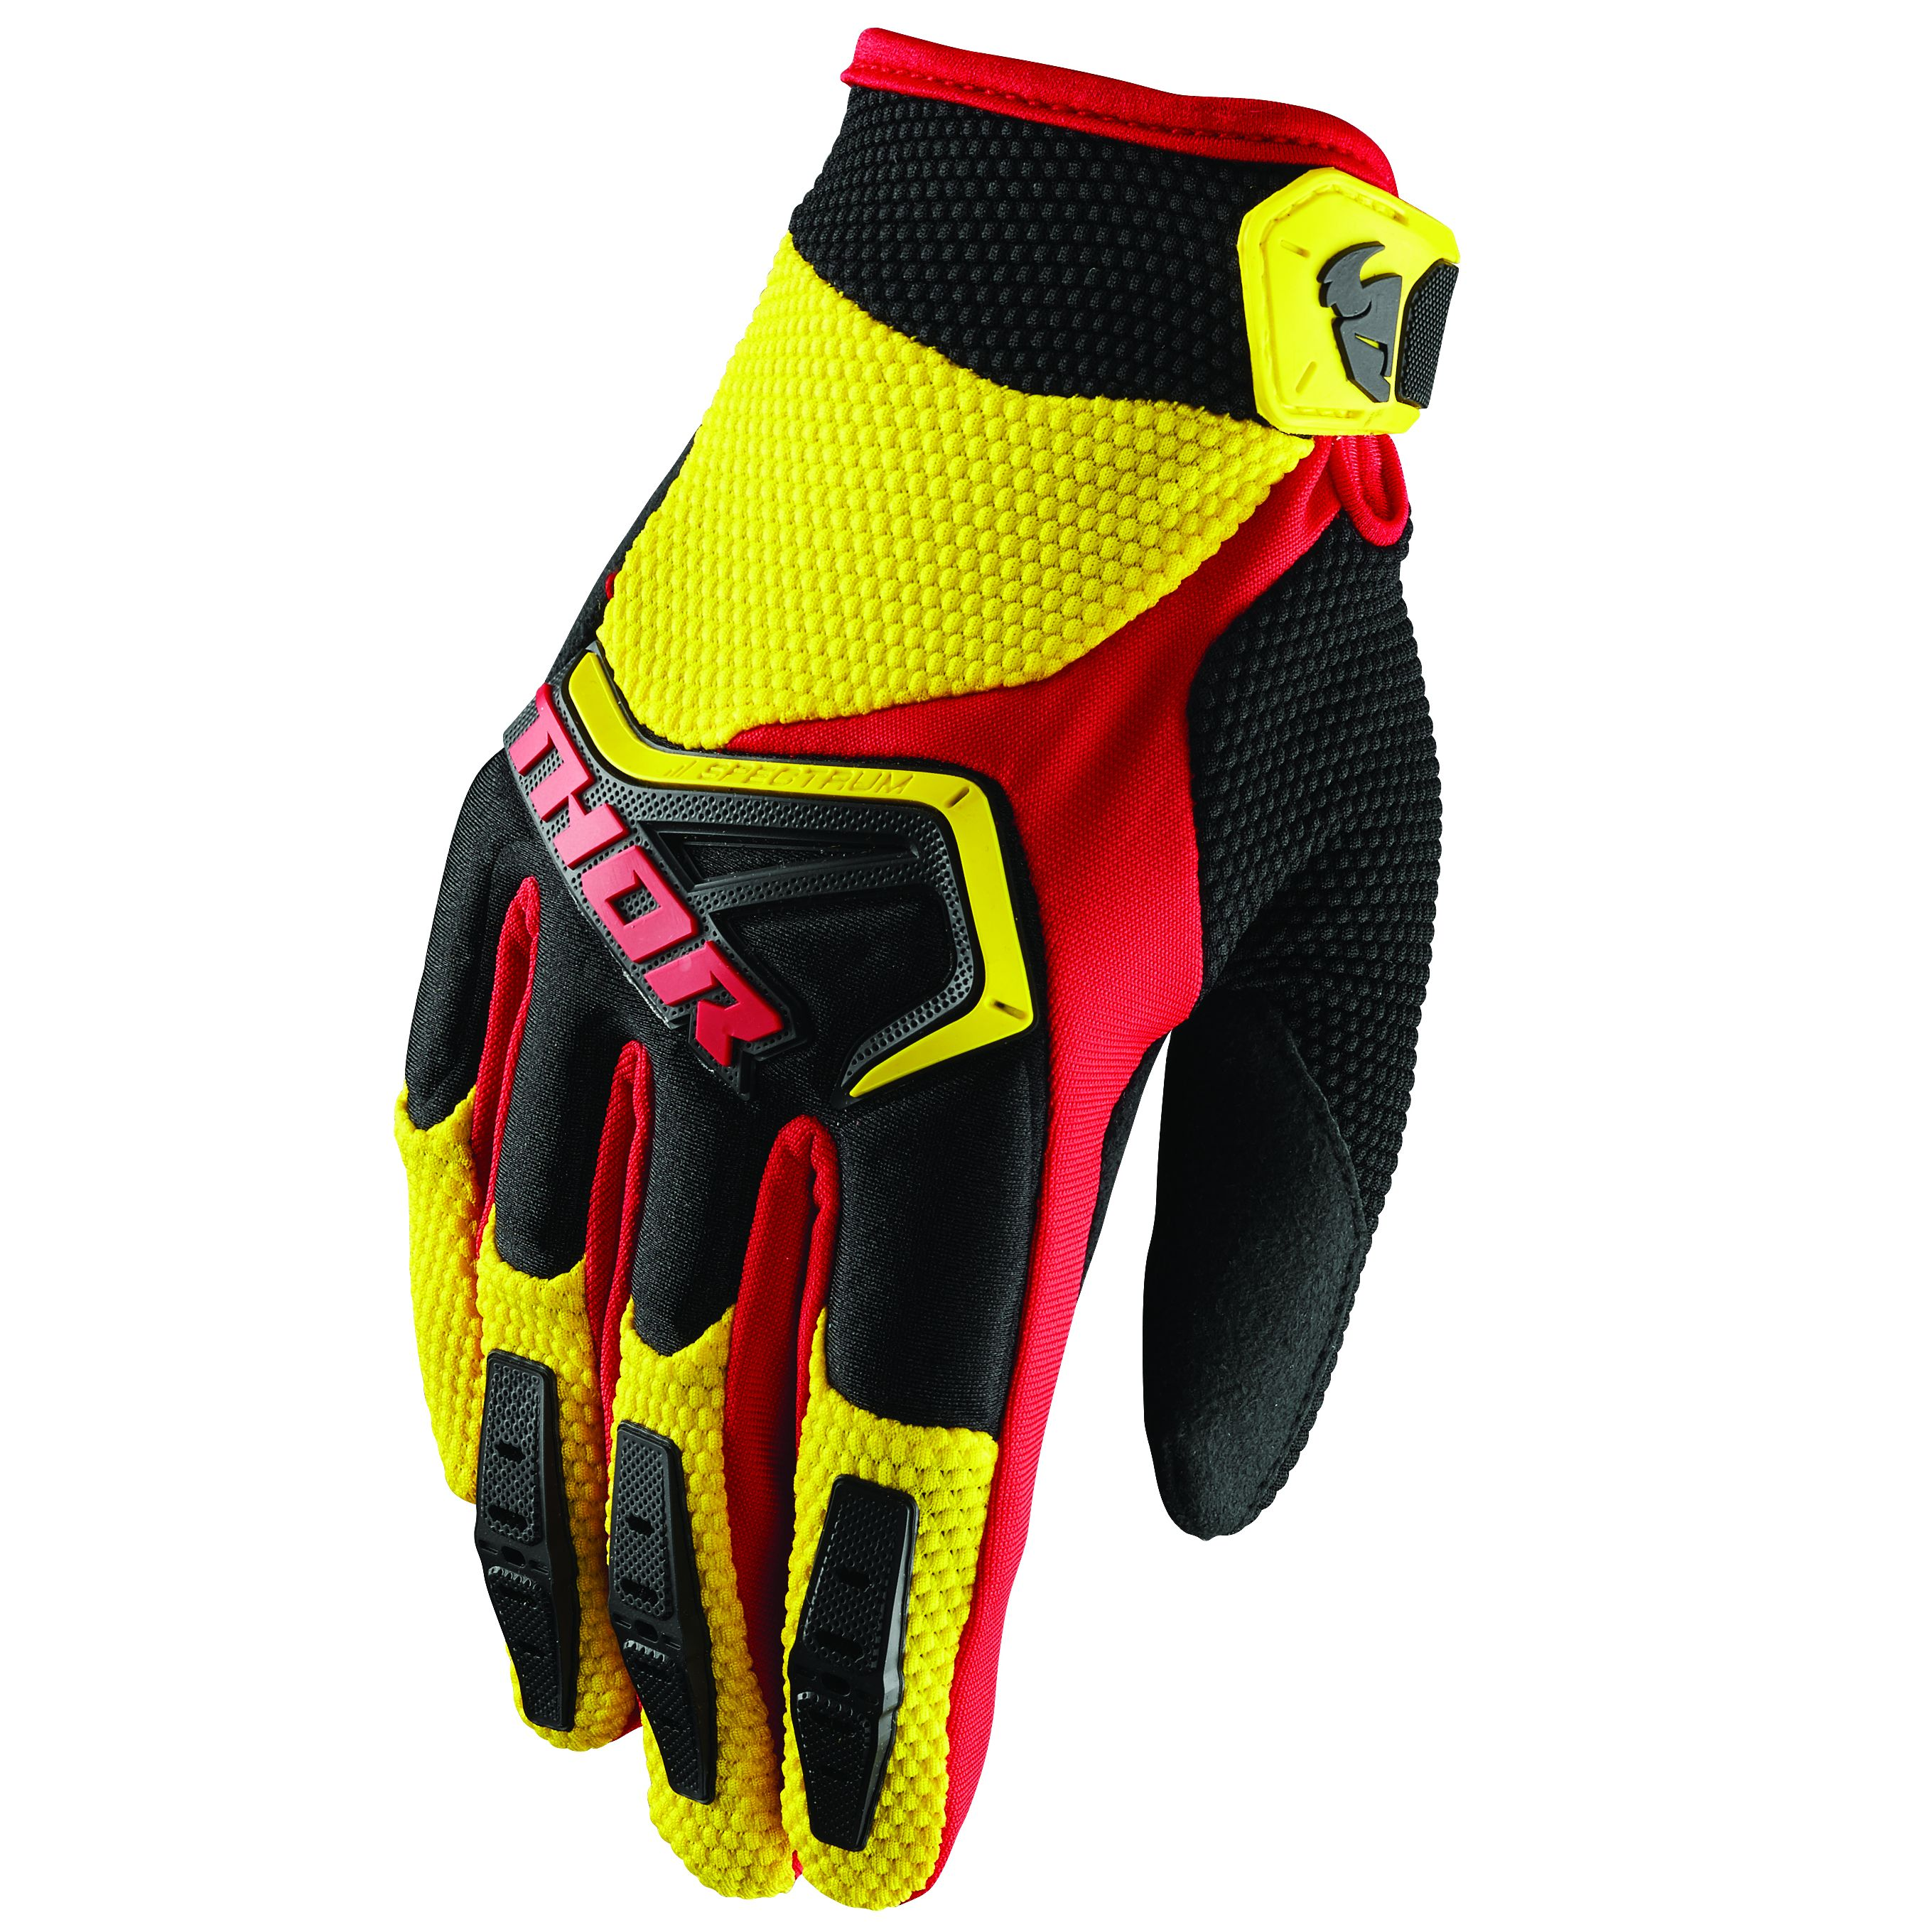 Gants cross Thor SPECTRUM YELLOW BLACK RED ENFANT